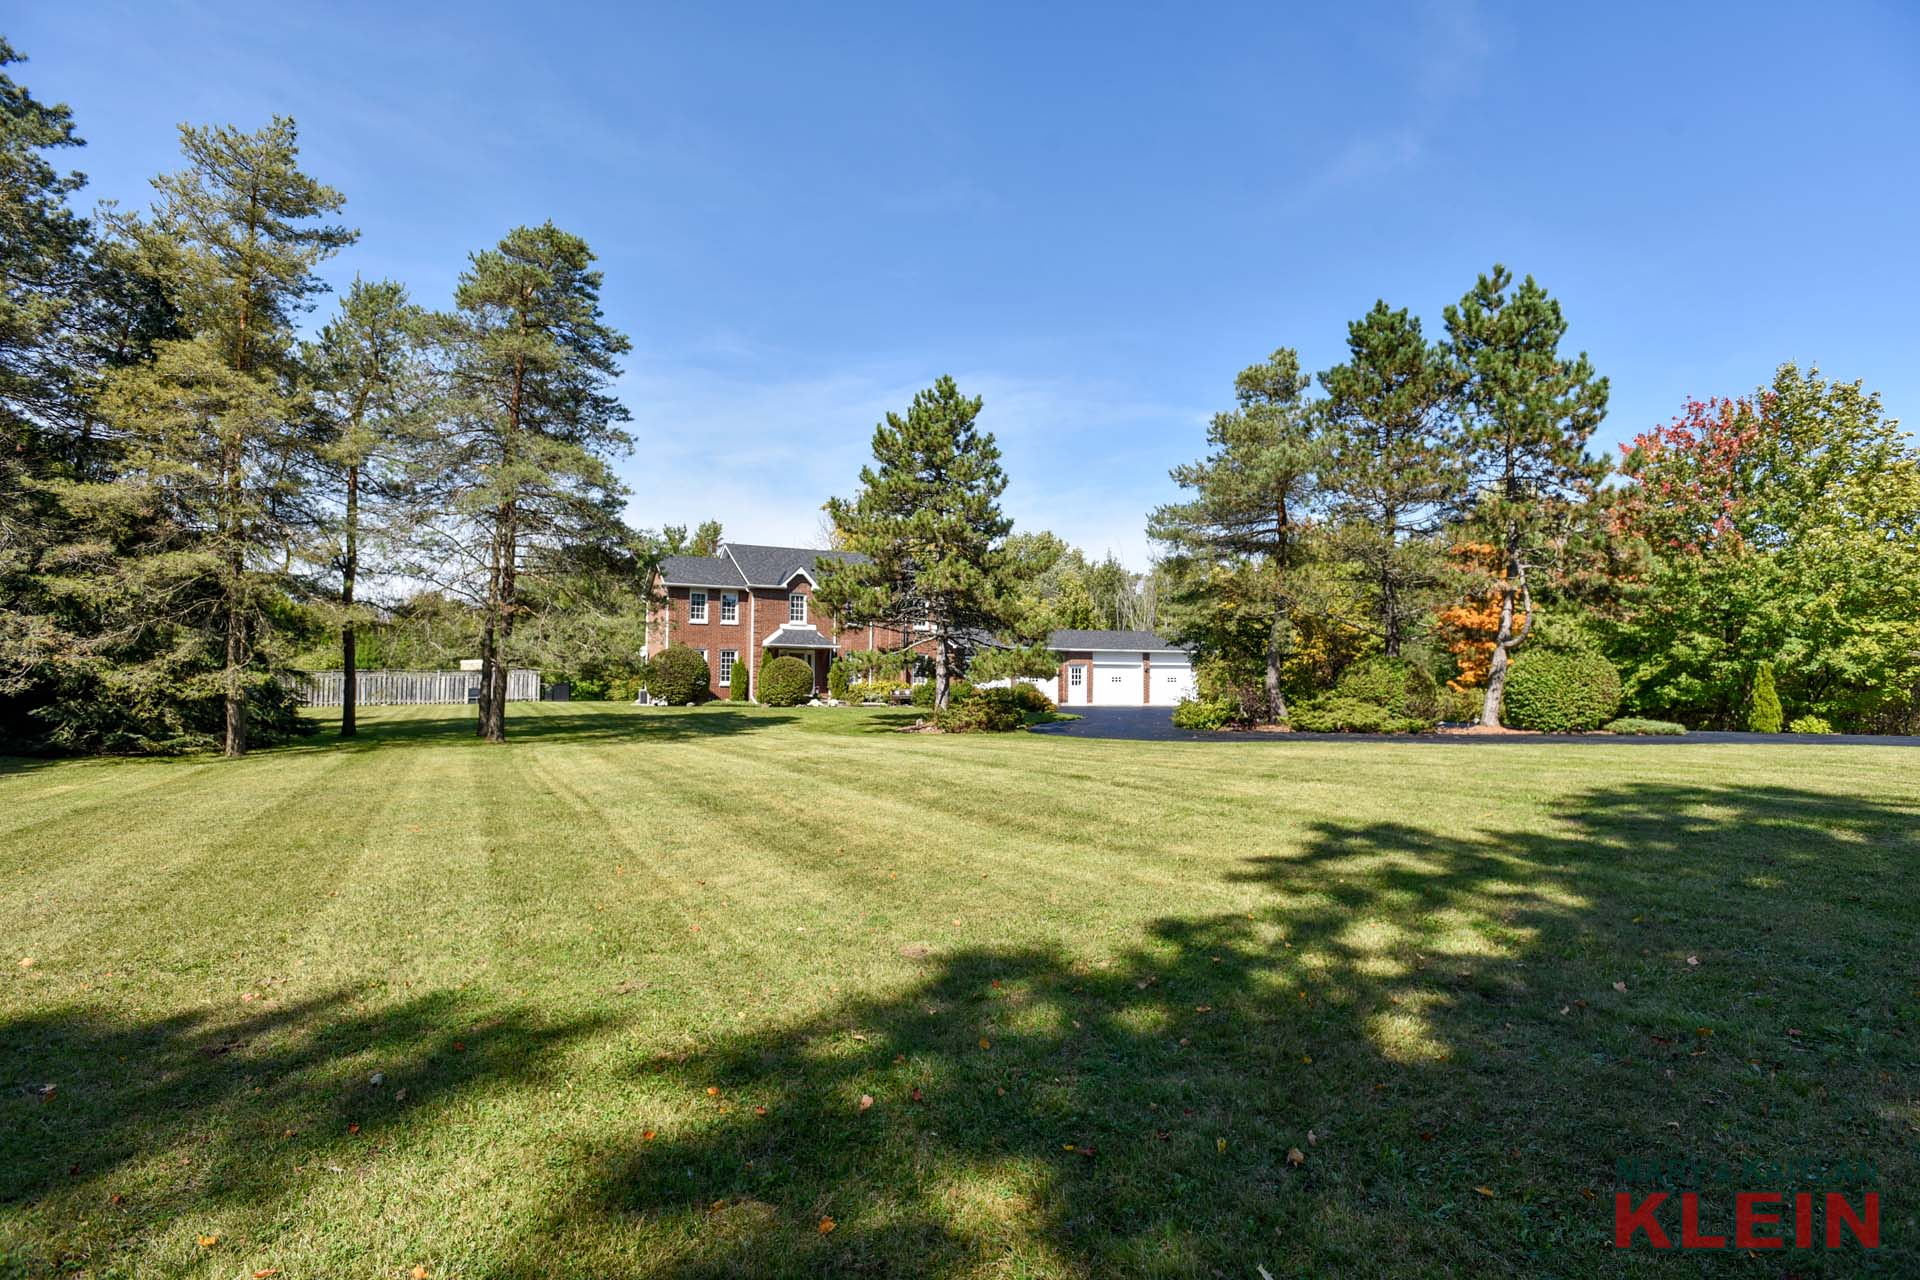 4 Car attached garage, 3.57 Acres in Tamarack Estates